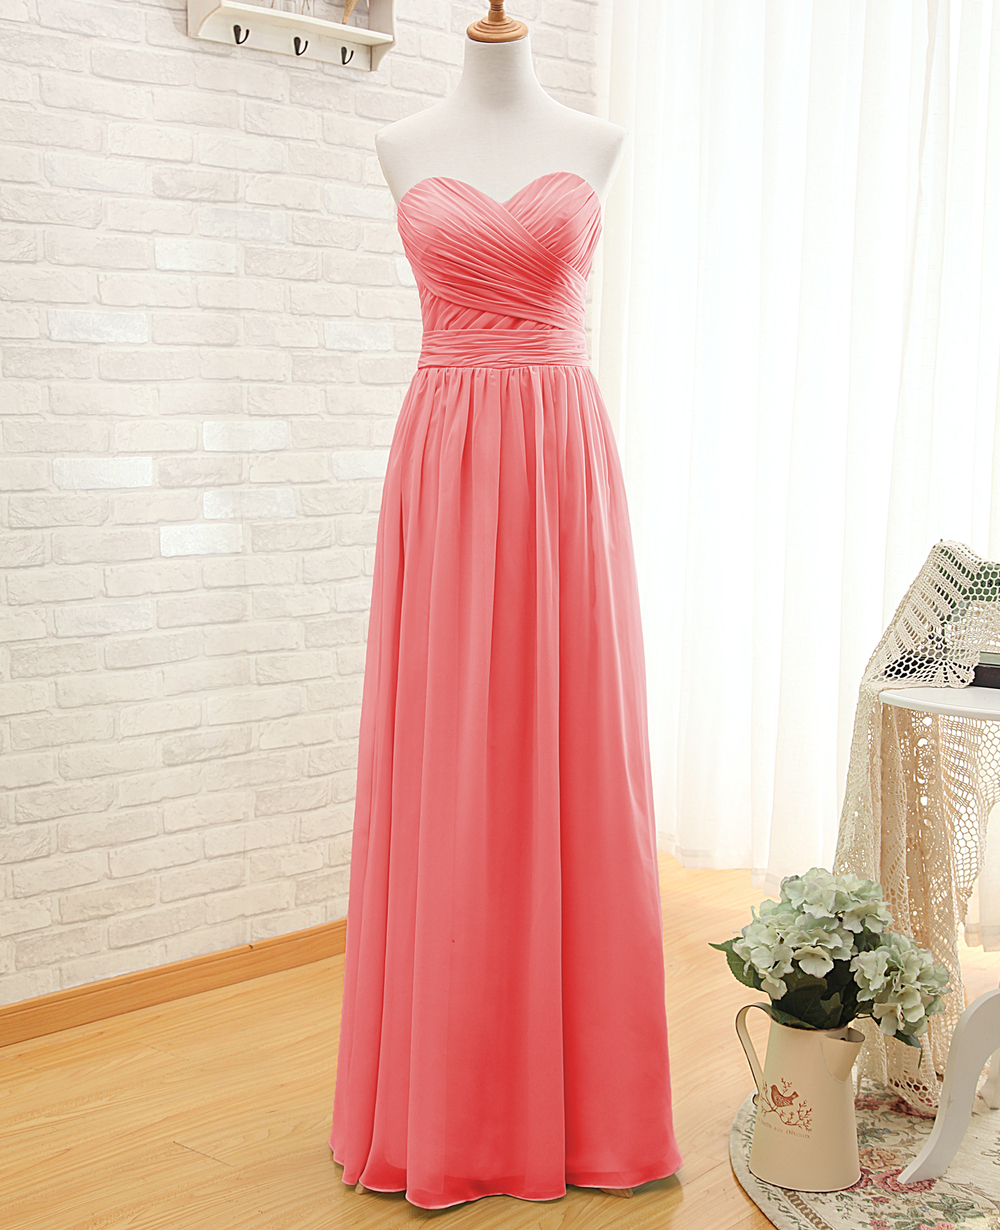 Aliexpress Buy Coral Colored Bridesmaid Dresses New Real Pictures A Line Sleeveless